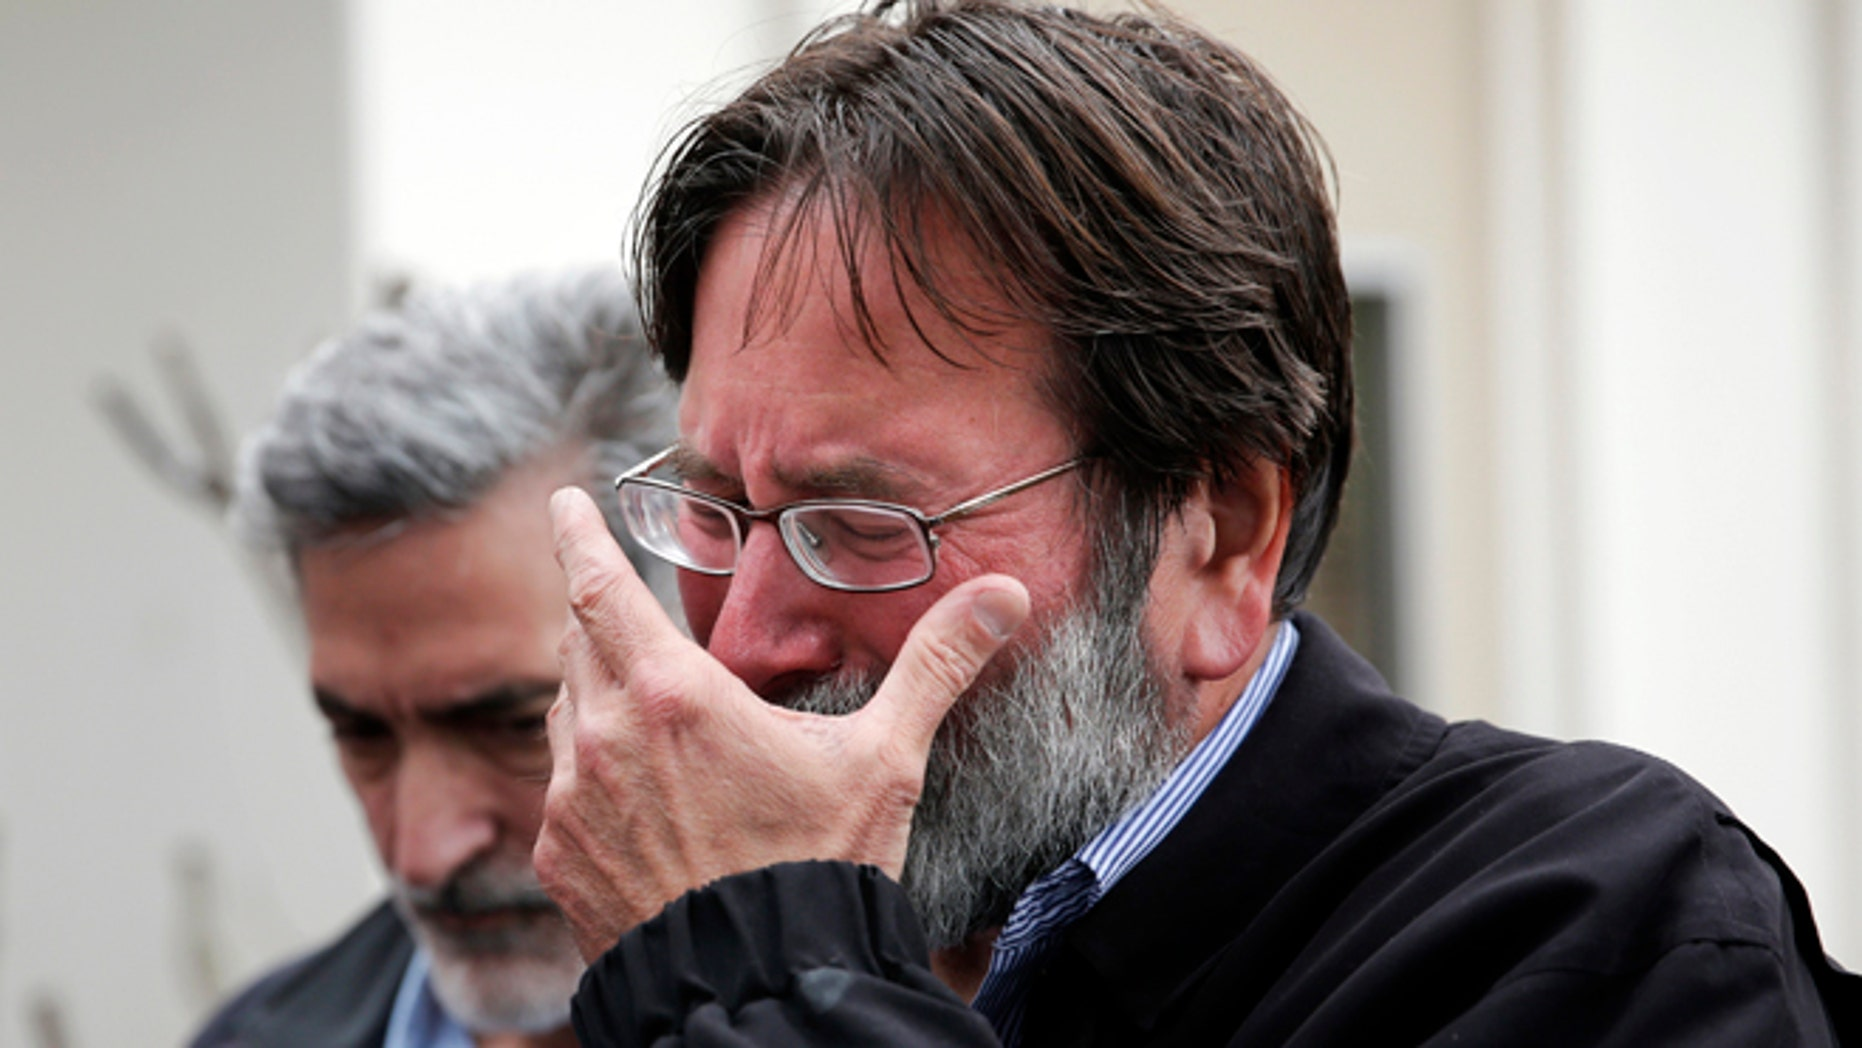 May 24, 2014: Richard Martinez who says his son Christopher Michael-Martinez was killed in Friday night's mass shooting that took place in Isla Vista, Calif., breaks down as he talks to media outside the Santa Barbara County Sheriff's Headquarters in Santa Barbara, Calif.